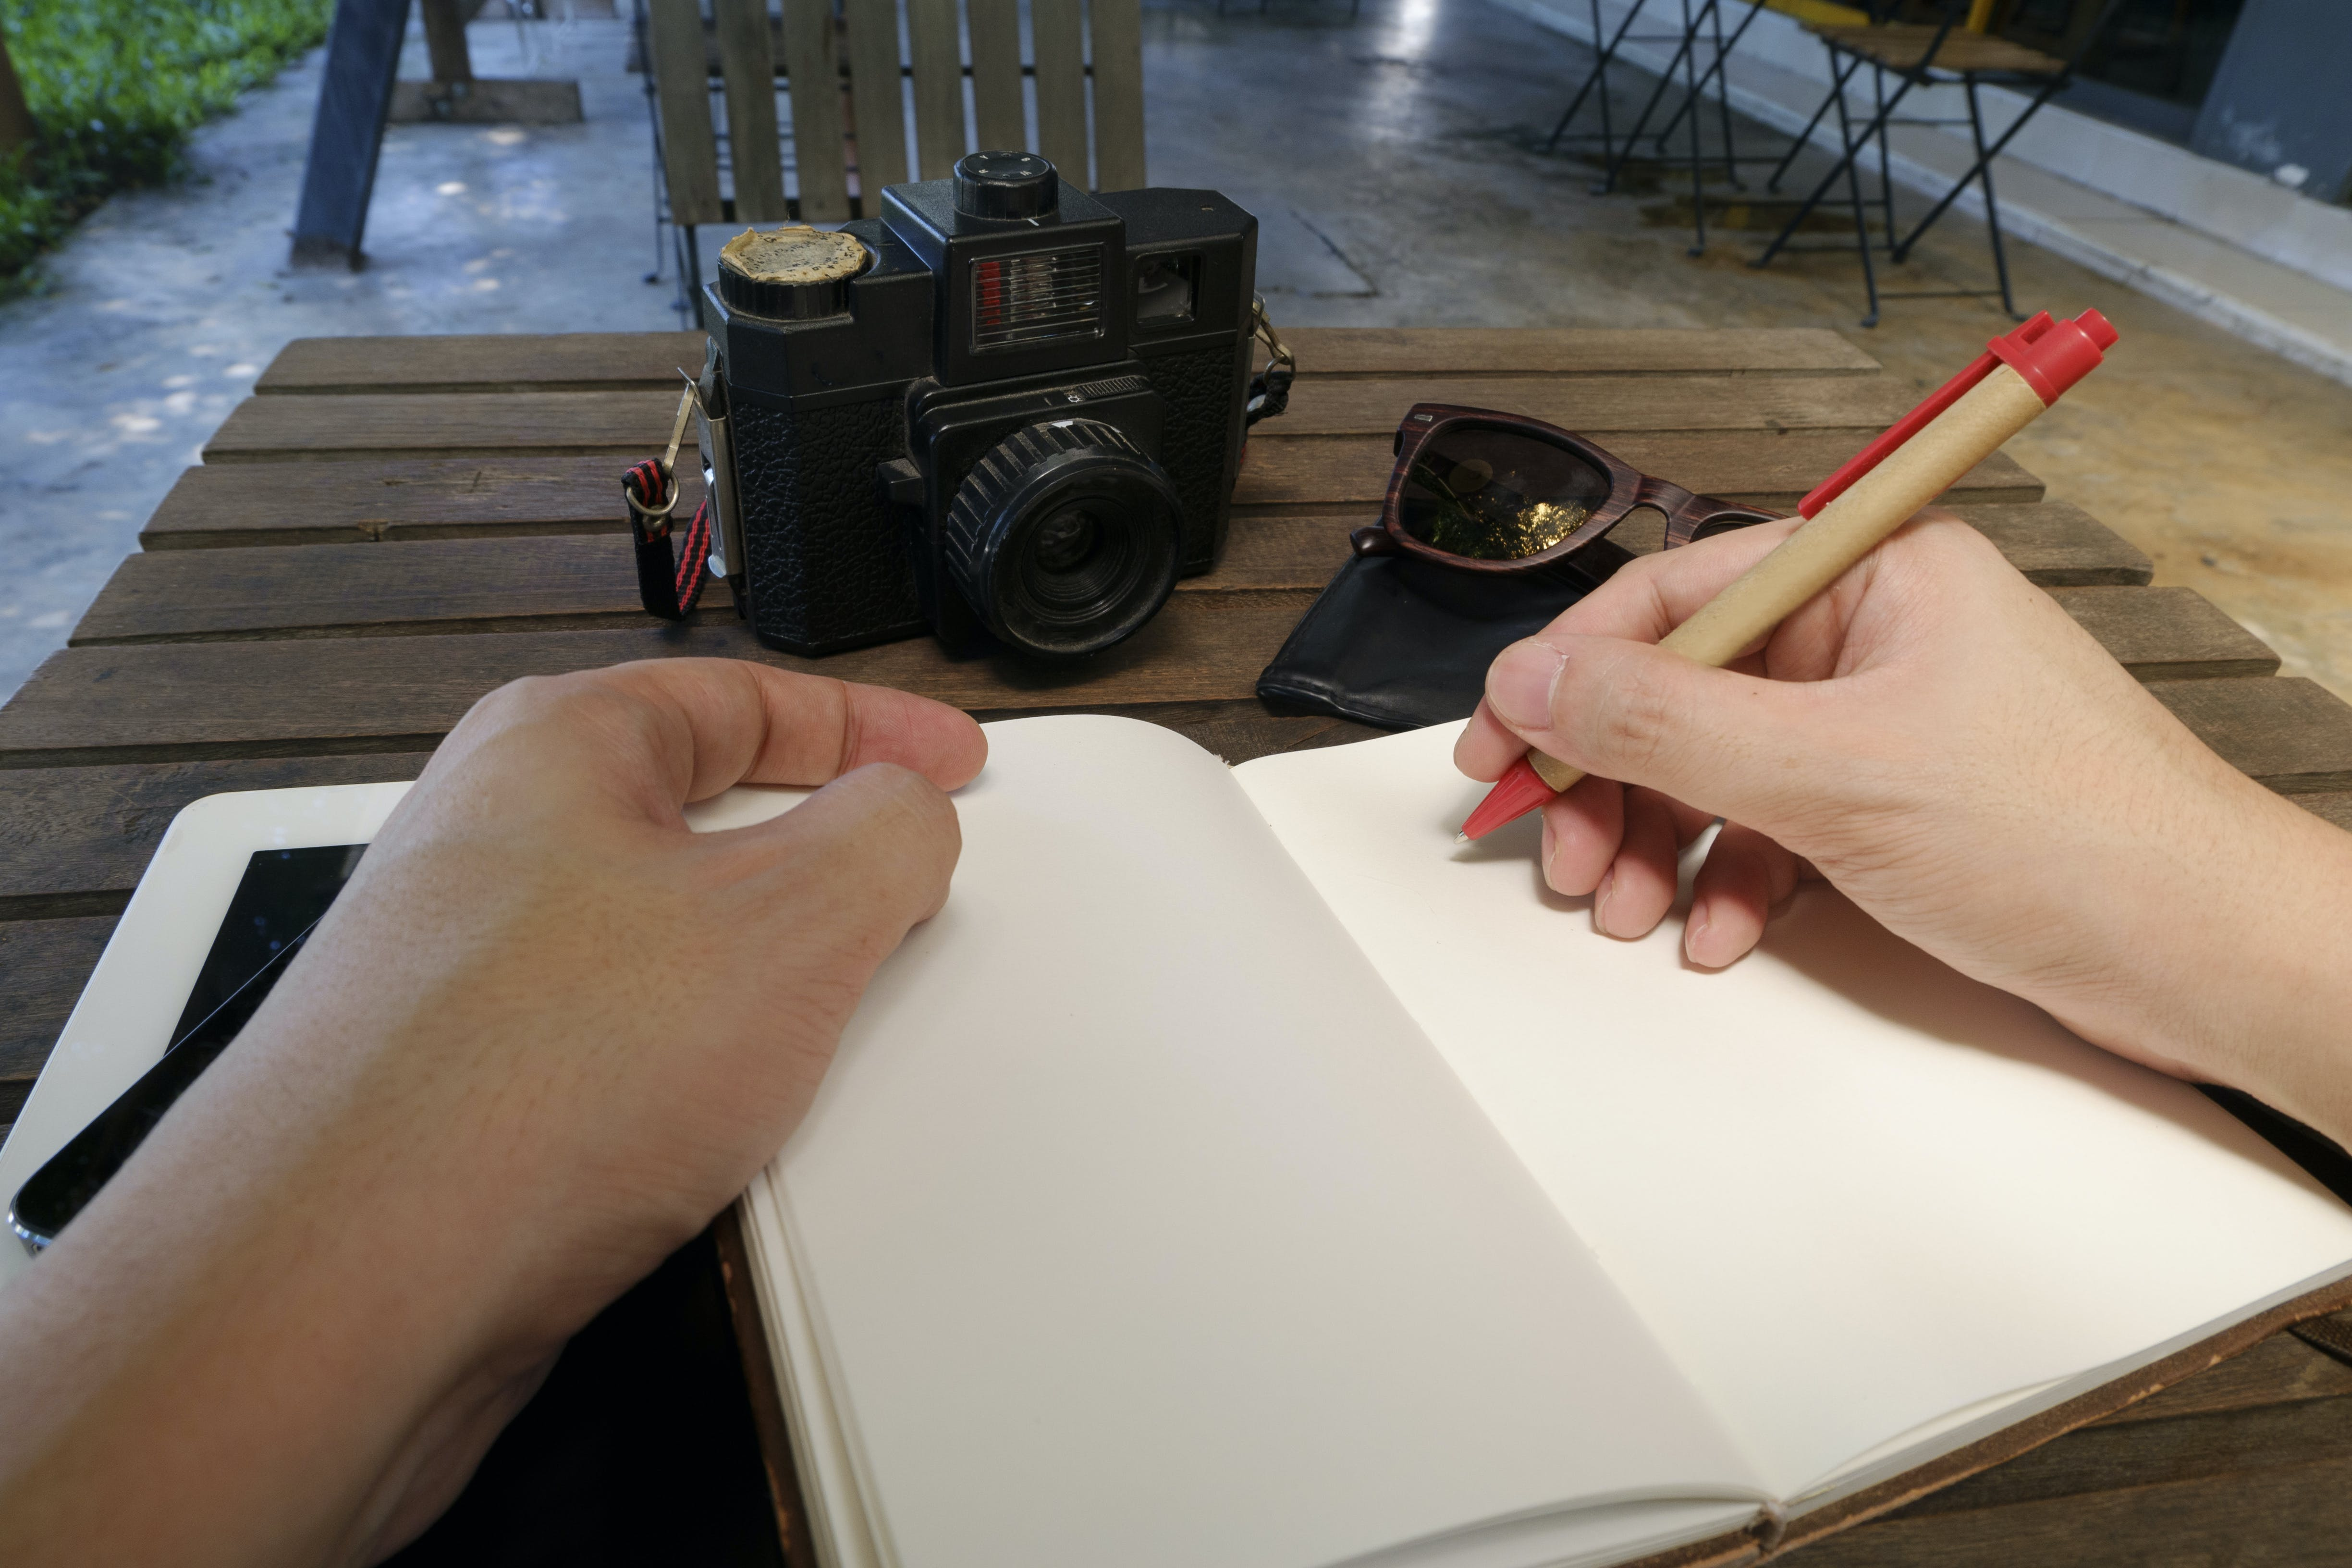 Free stock photo of sunglasses, hands, camera, notebook